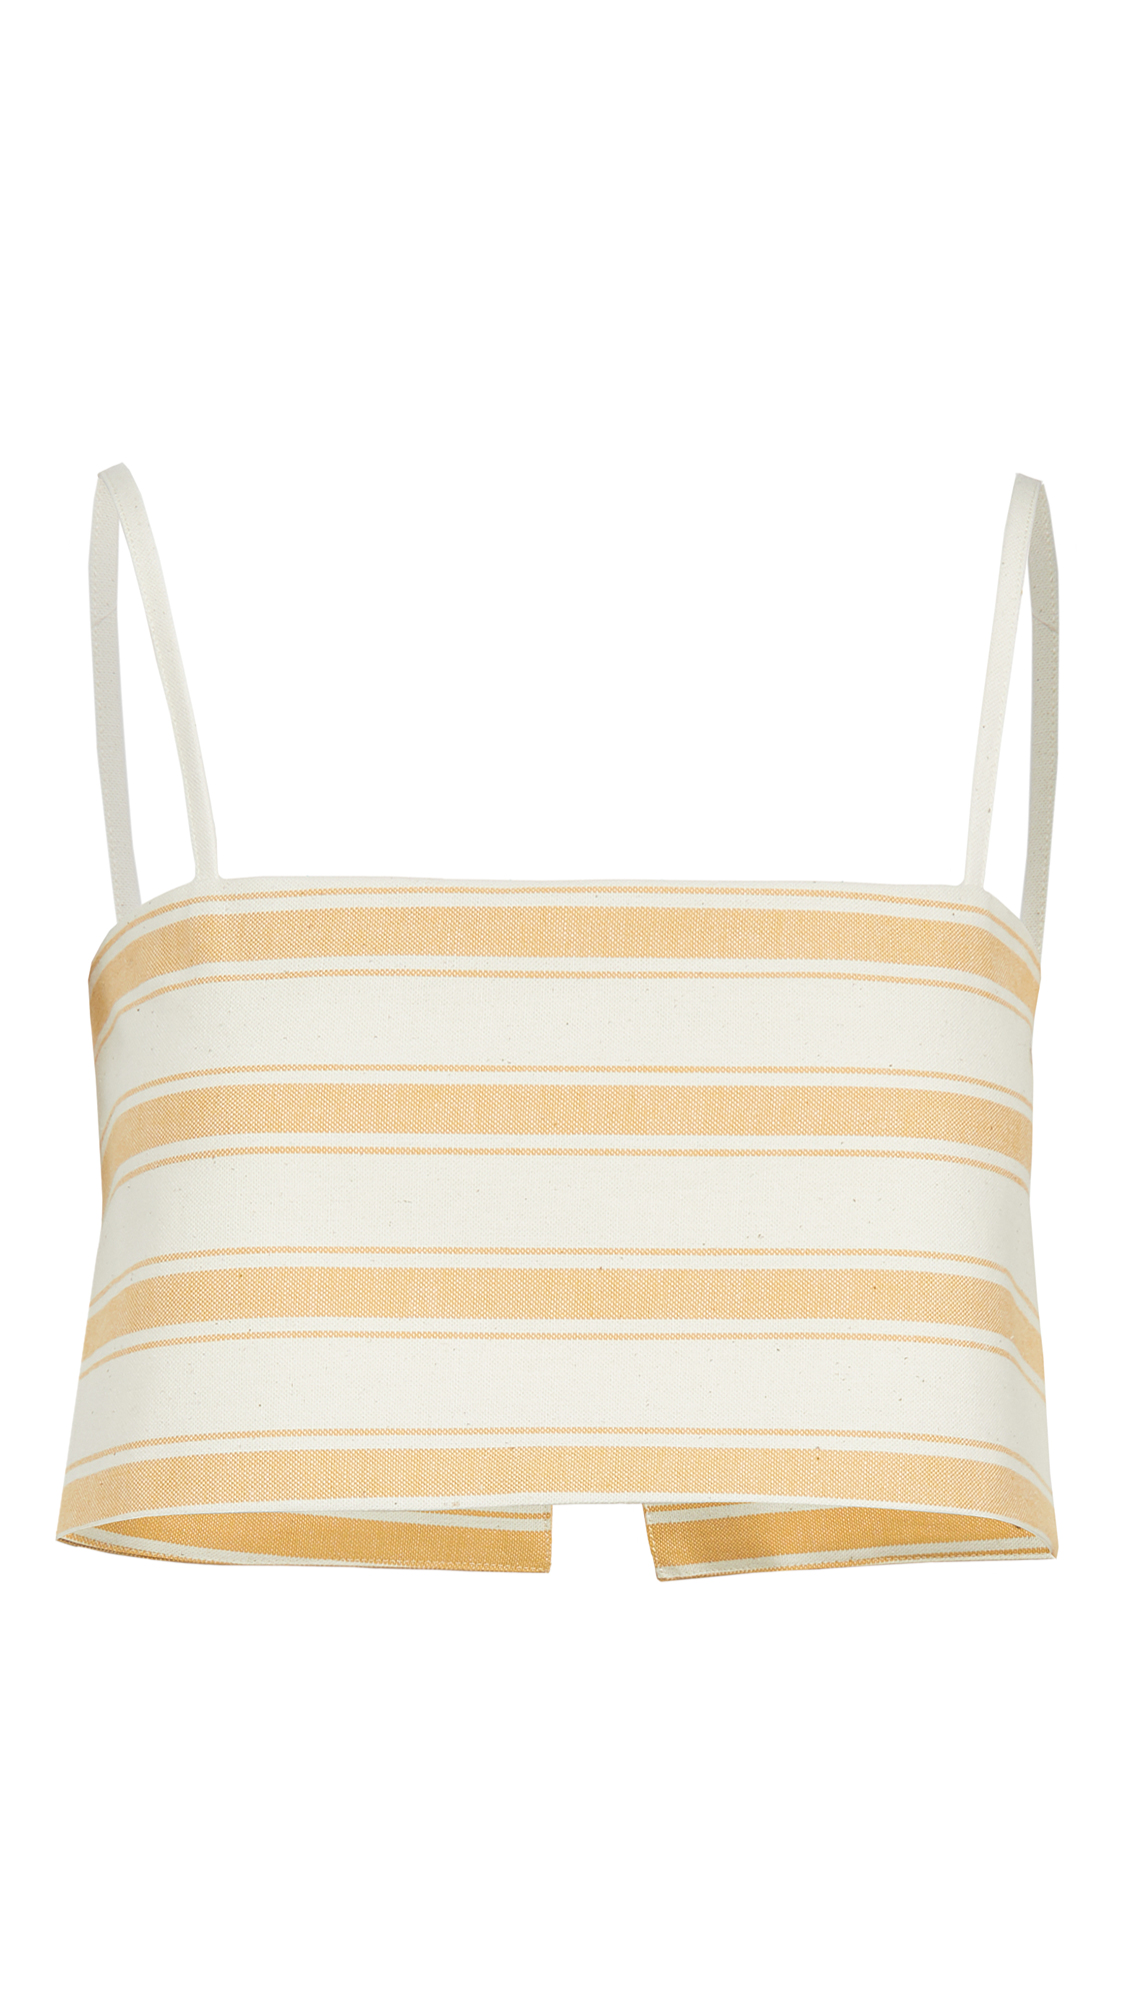 Rosie Assoulin Cottons EASY BANDEAU TOP